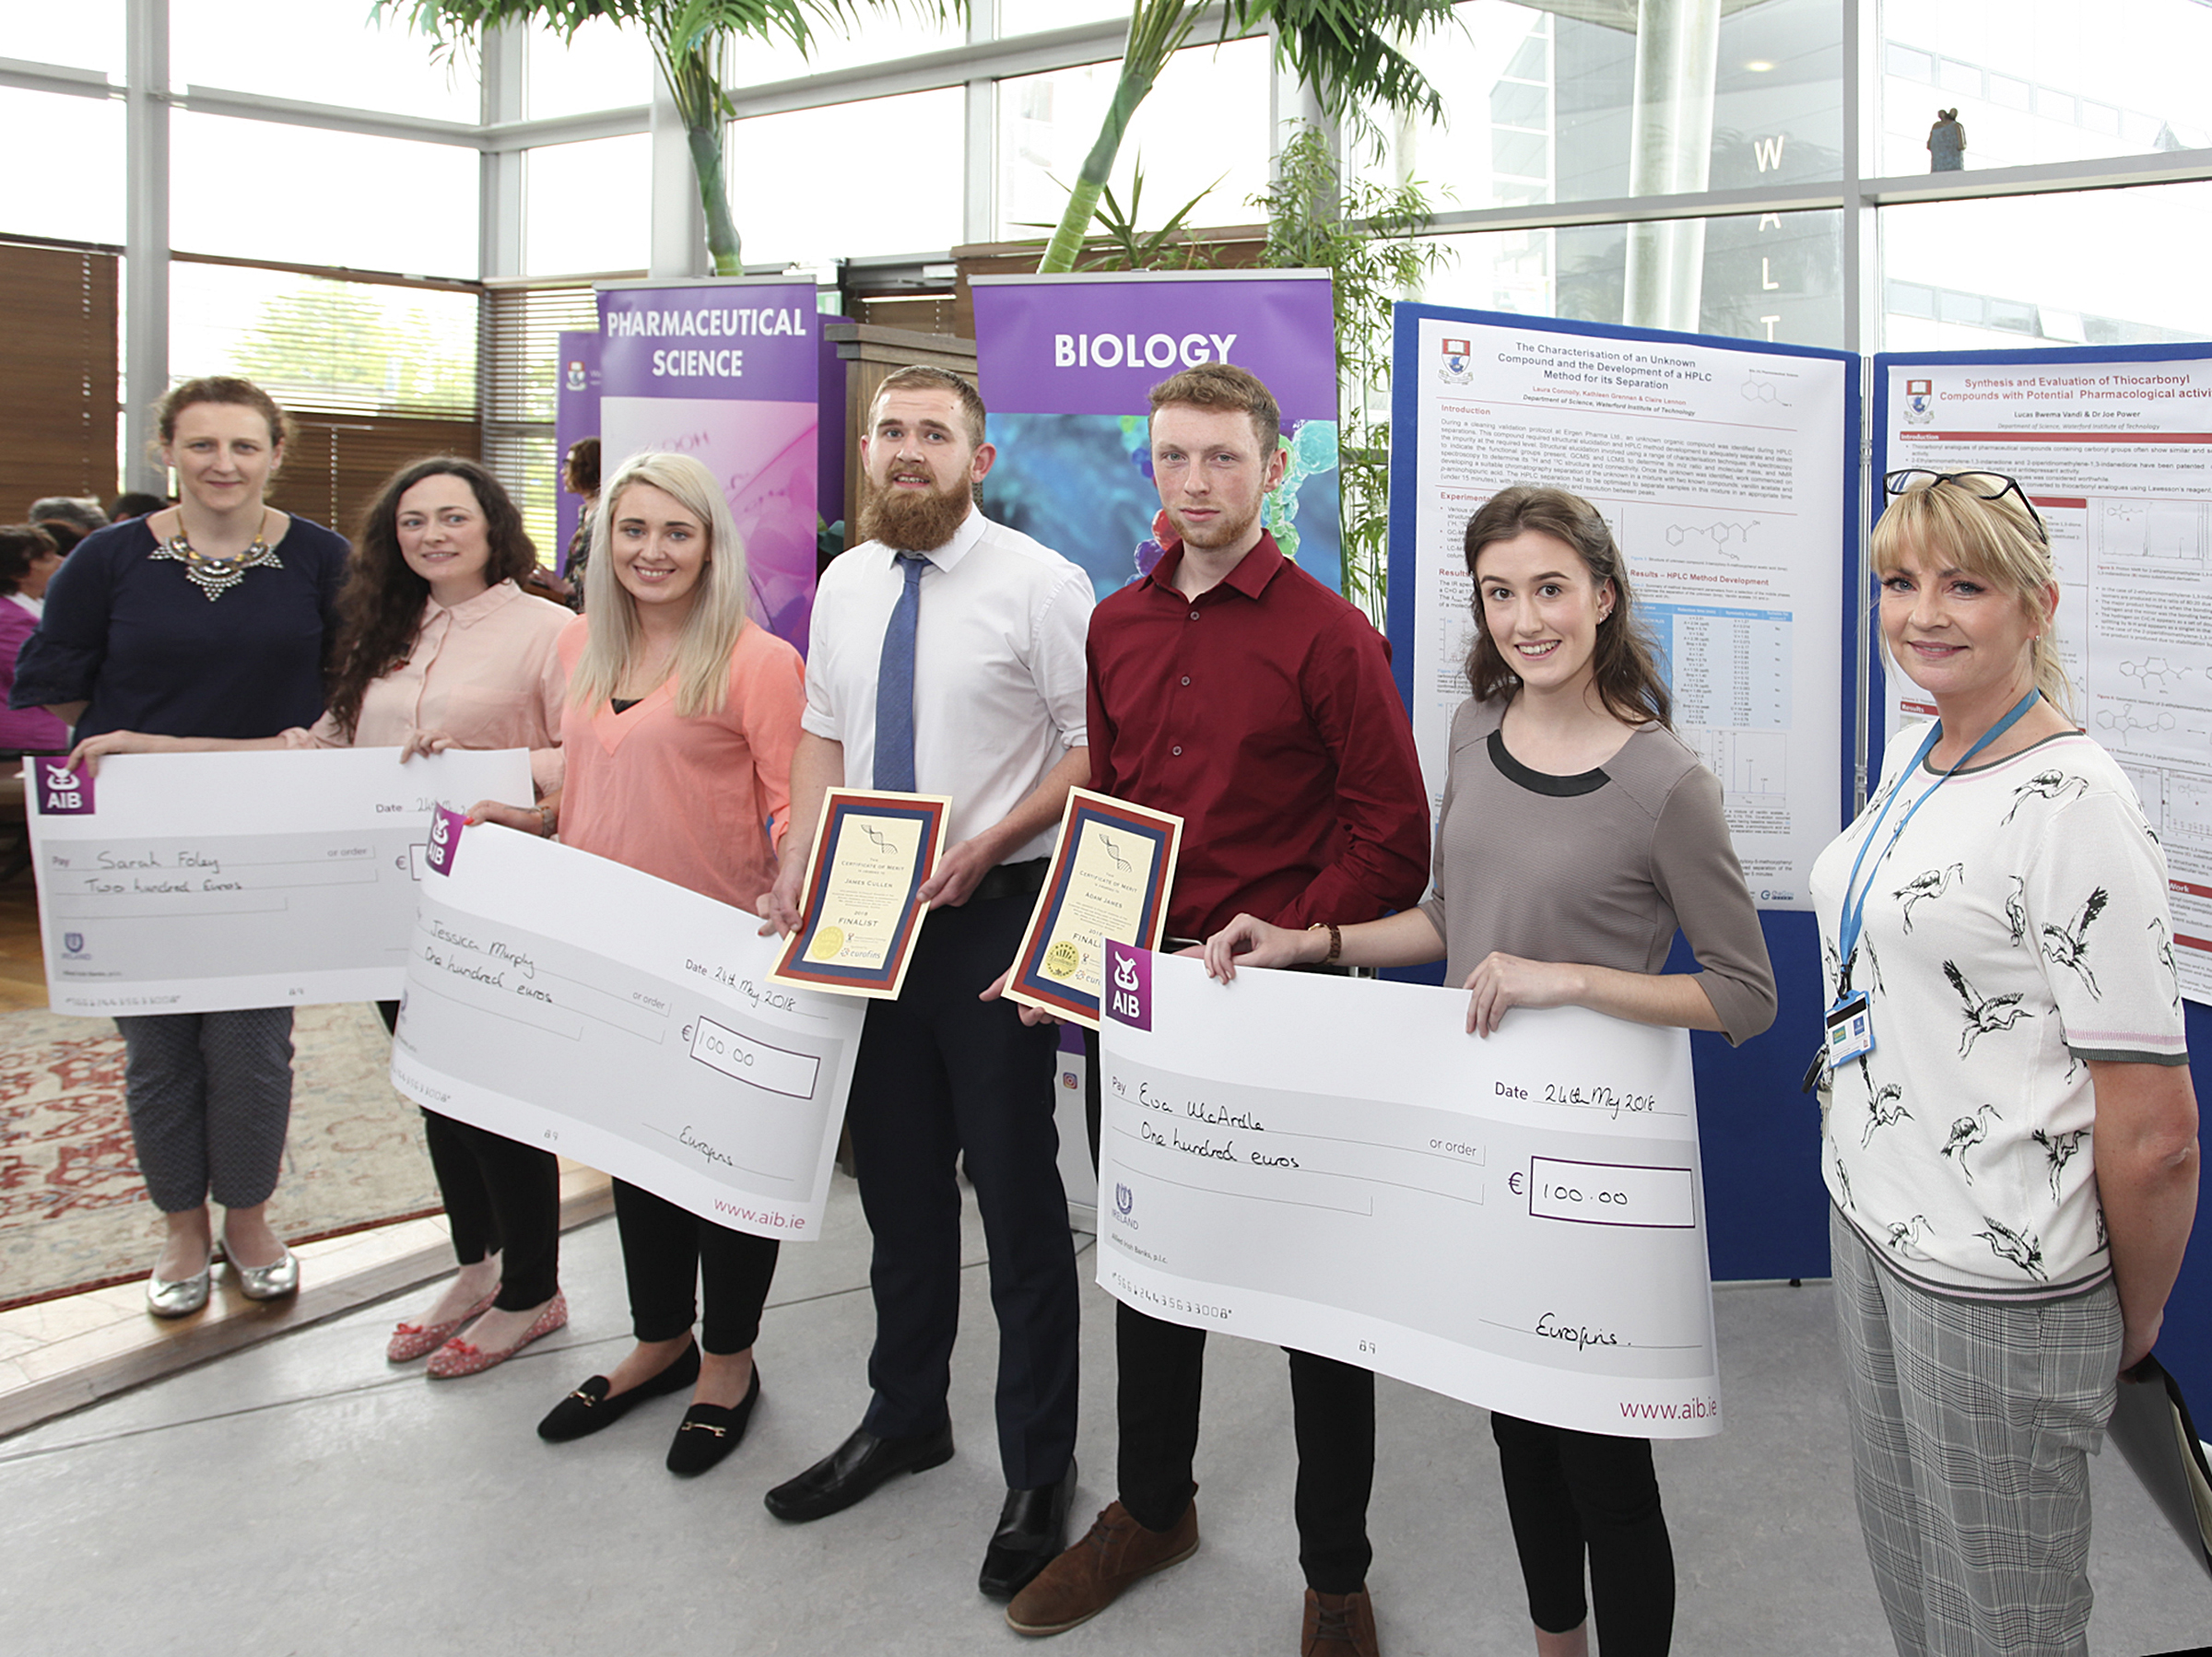 From left to right: Michelle Mannix (Eurofins), Sarah Foley, Jessica Murphy, James Cullen, Adam James, Eva McArdle, Dr. Audrey Hearne (Programme Leader) at the 2018 Science awards at WIT